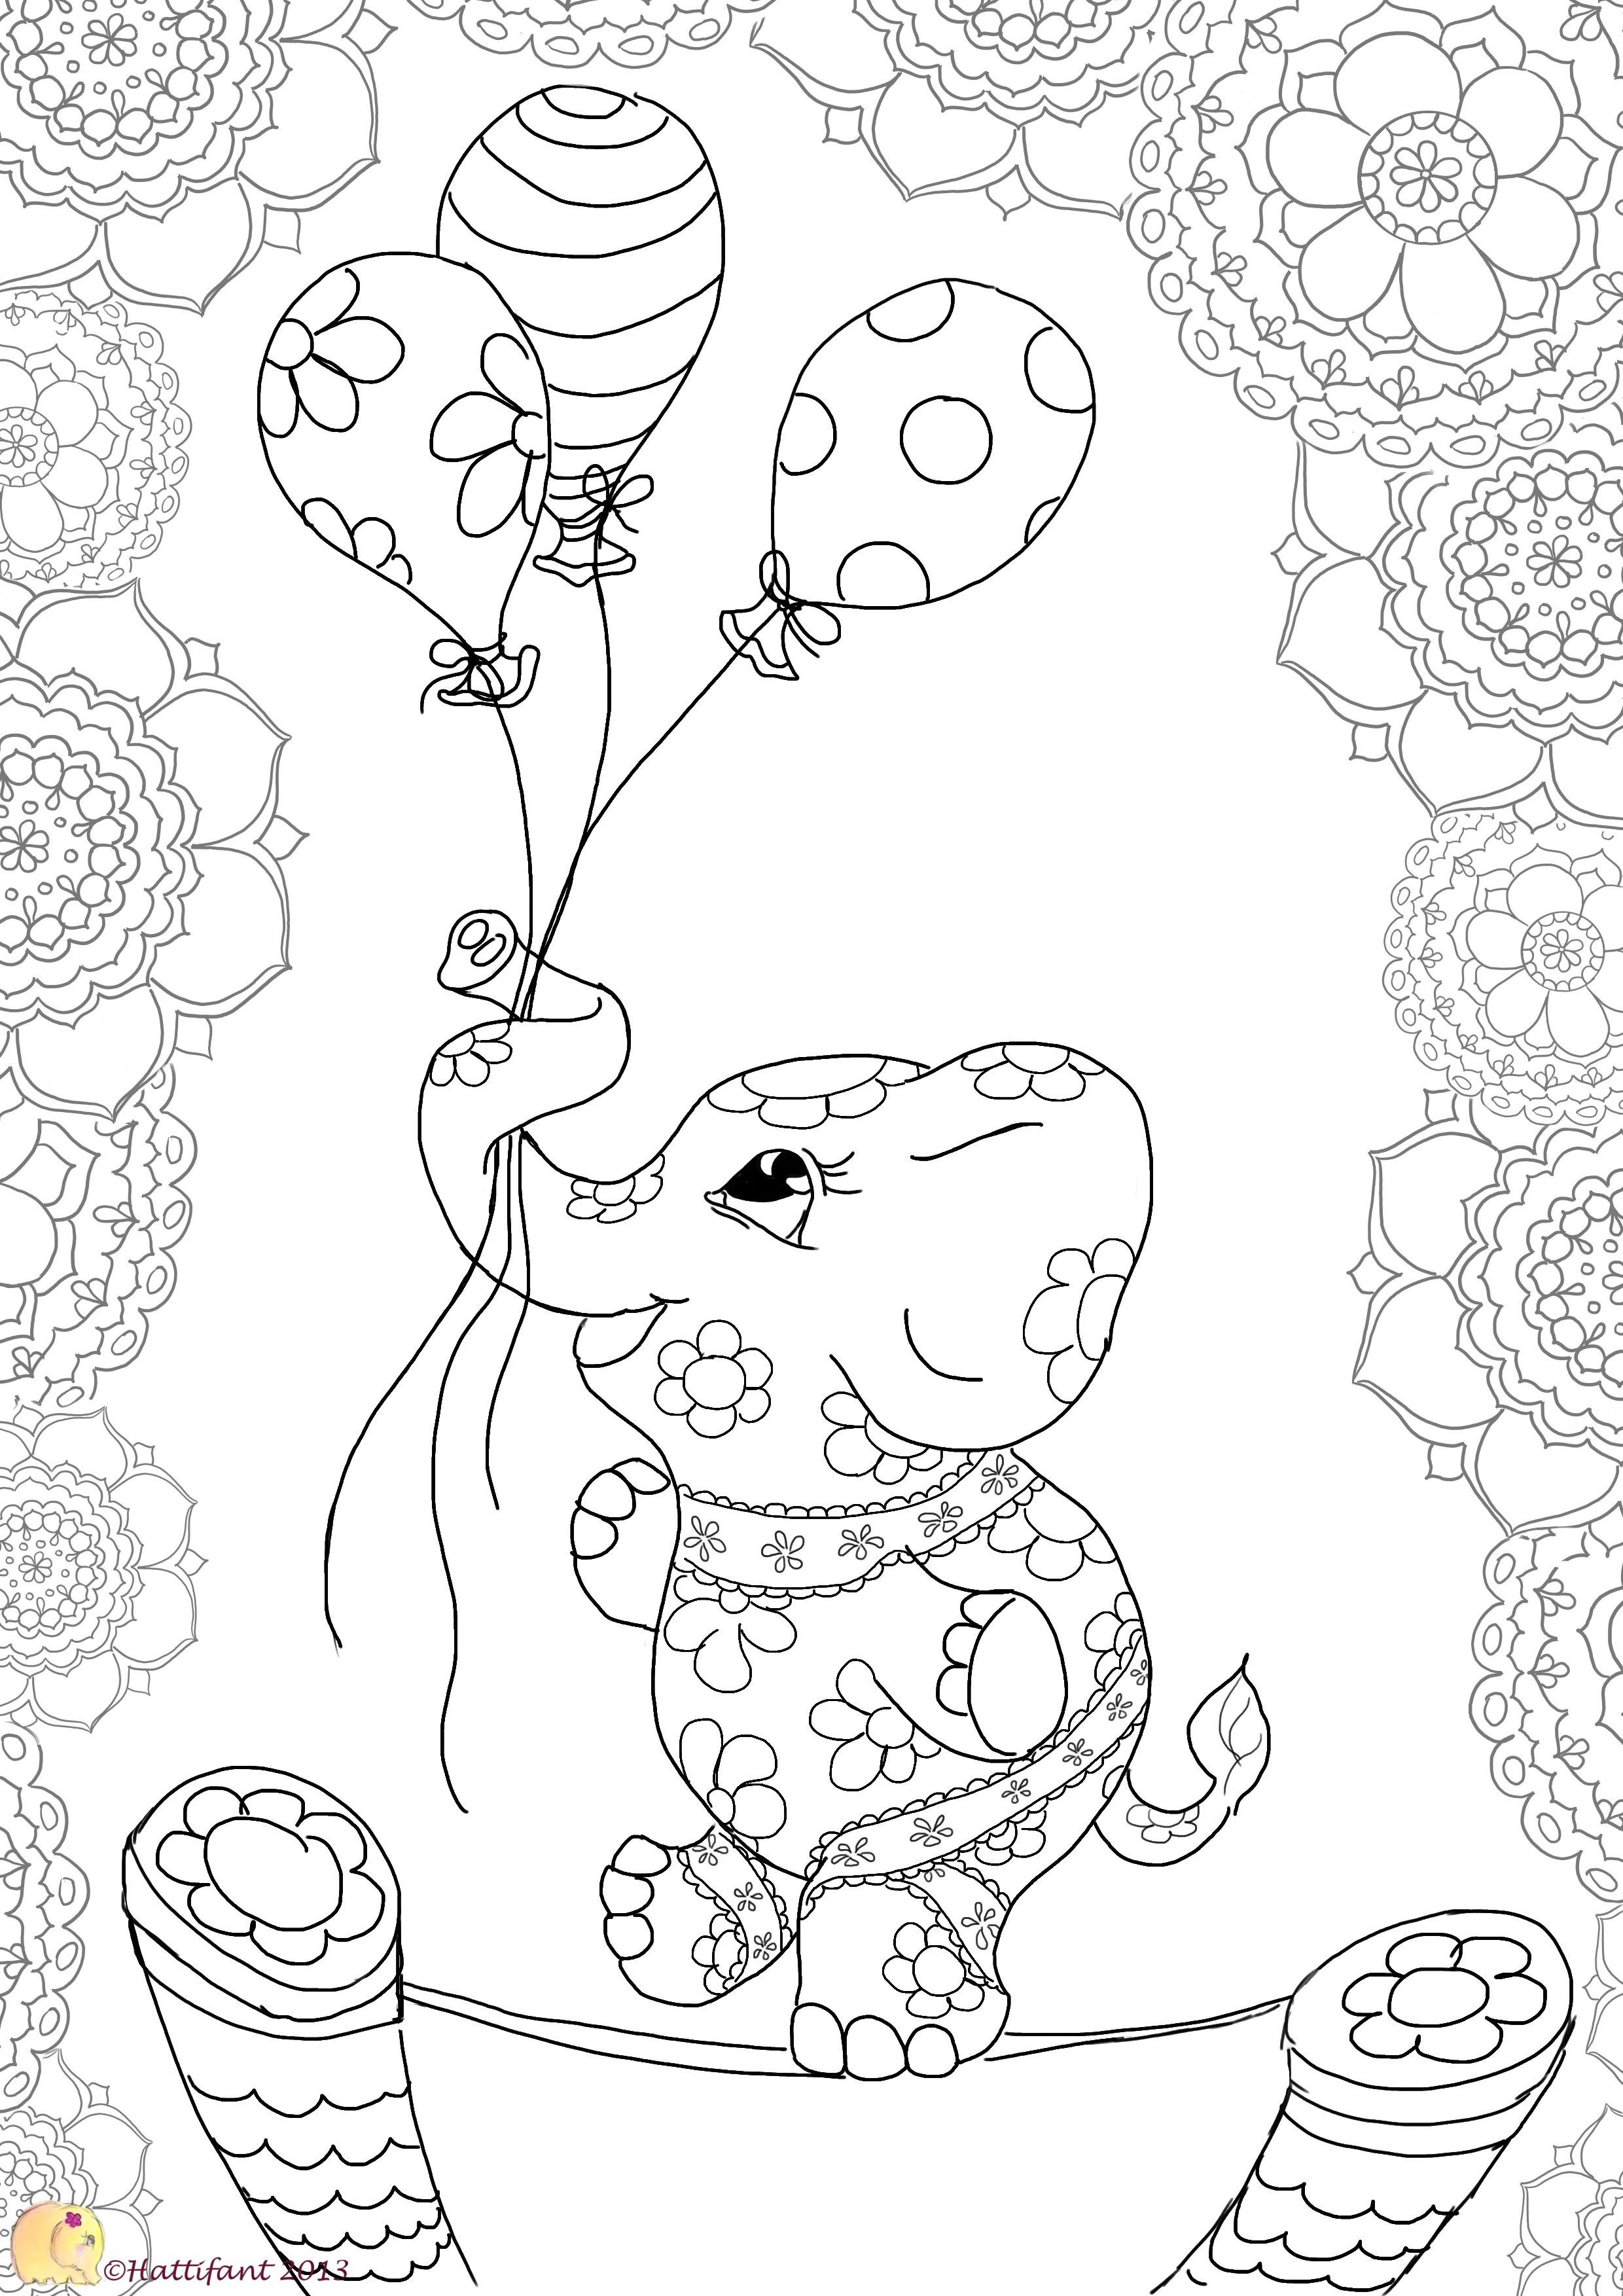 To colour in this dancing elephant click on the image. Related posts ...